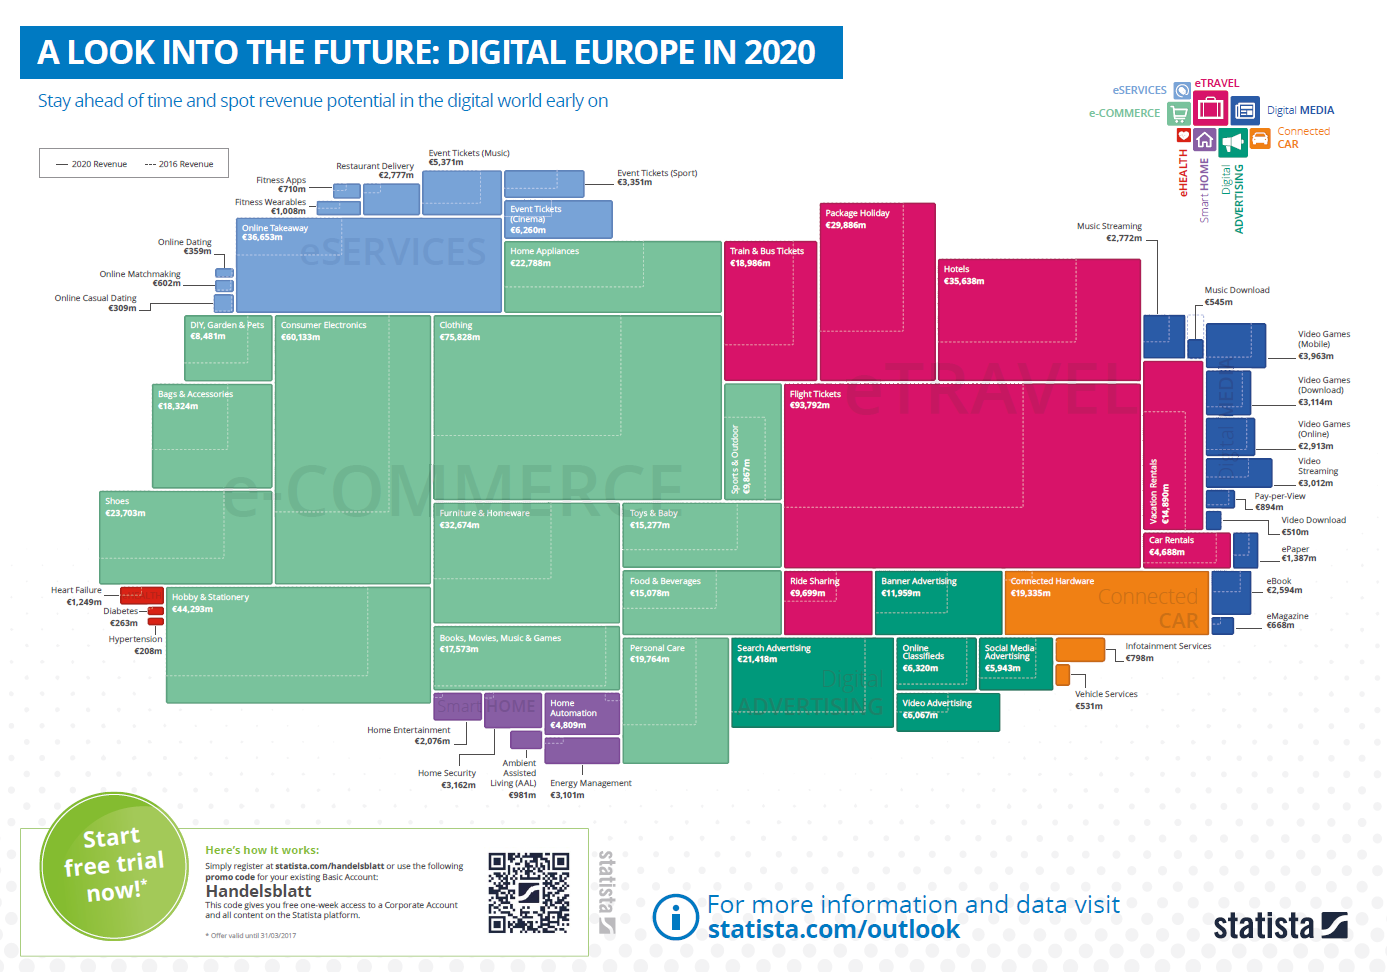 Digital Europe in 2020